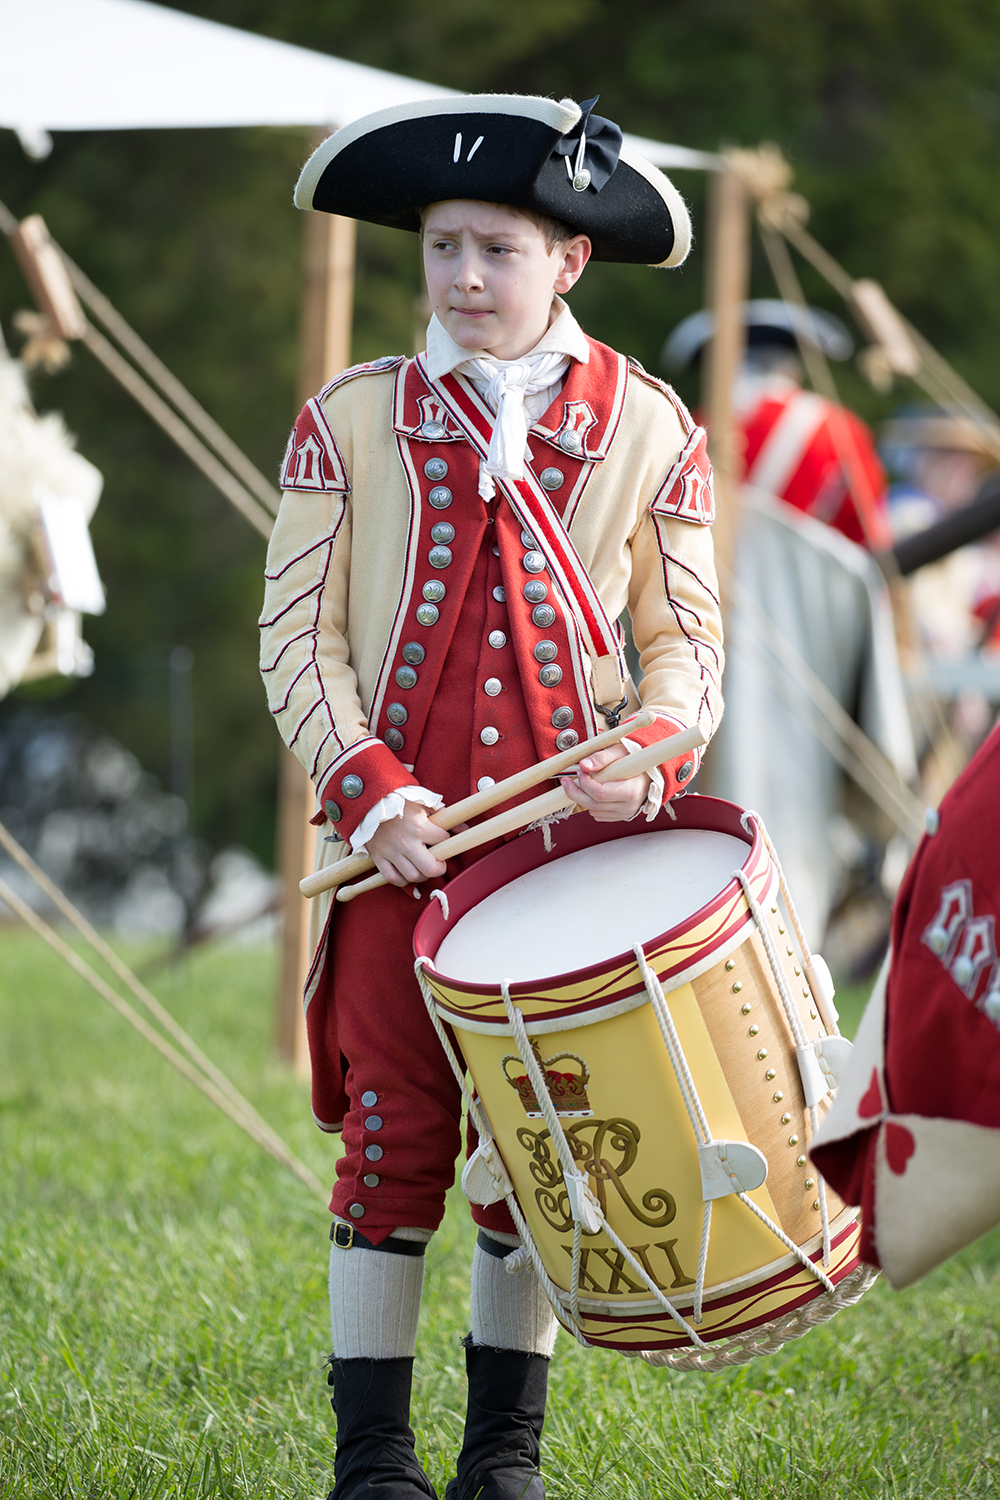 Who were the fifers and drummers? They were often young boys, whose fathers were soldiers, or older men, who were no longer of fighting age.